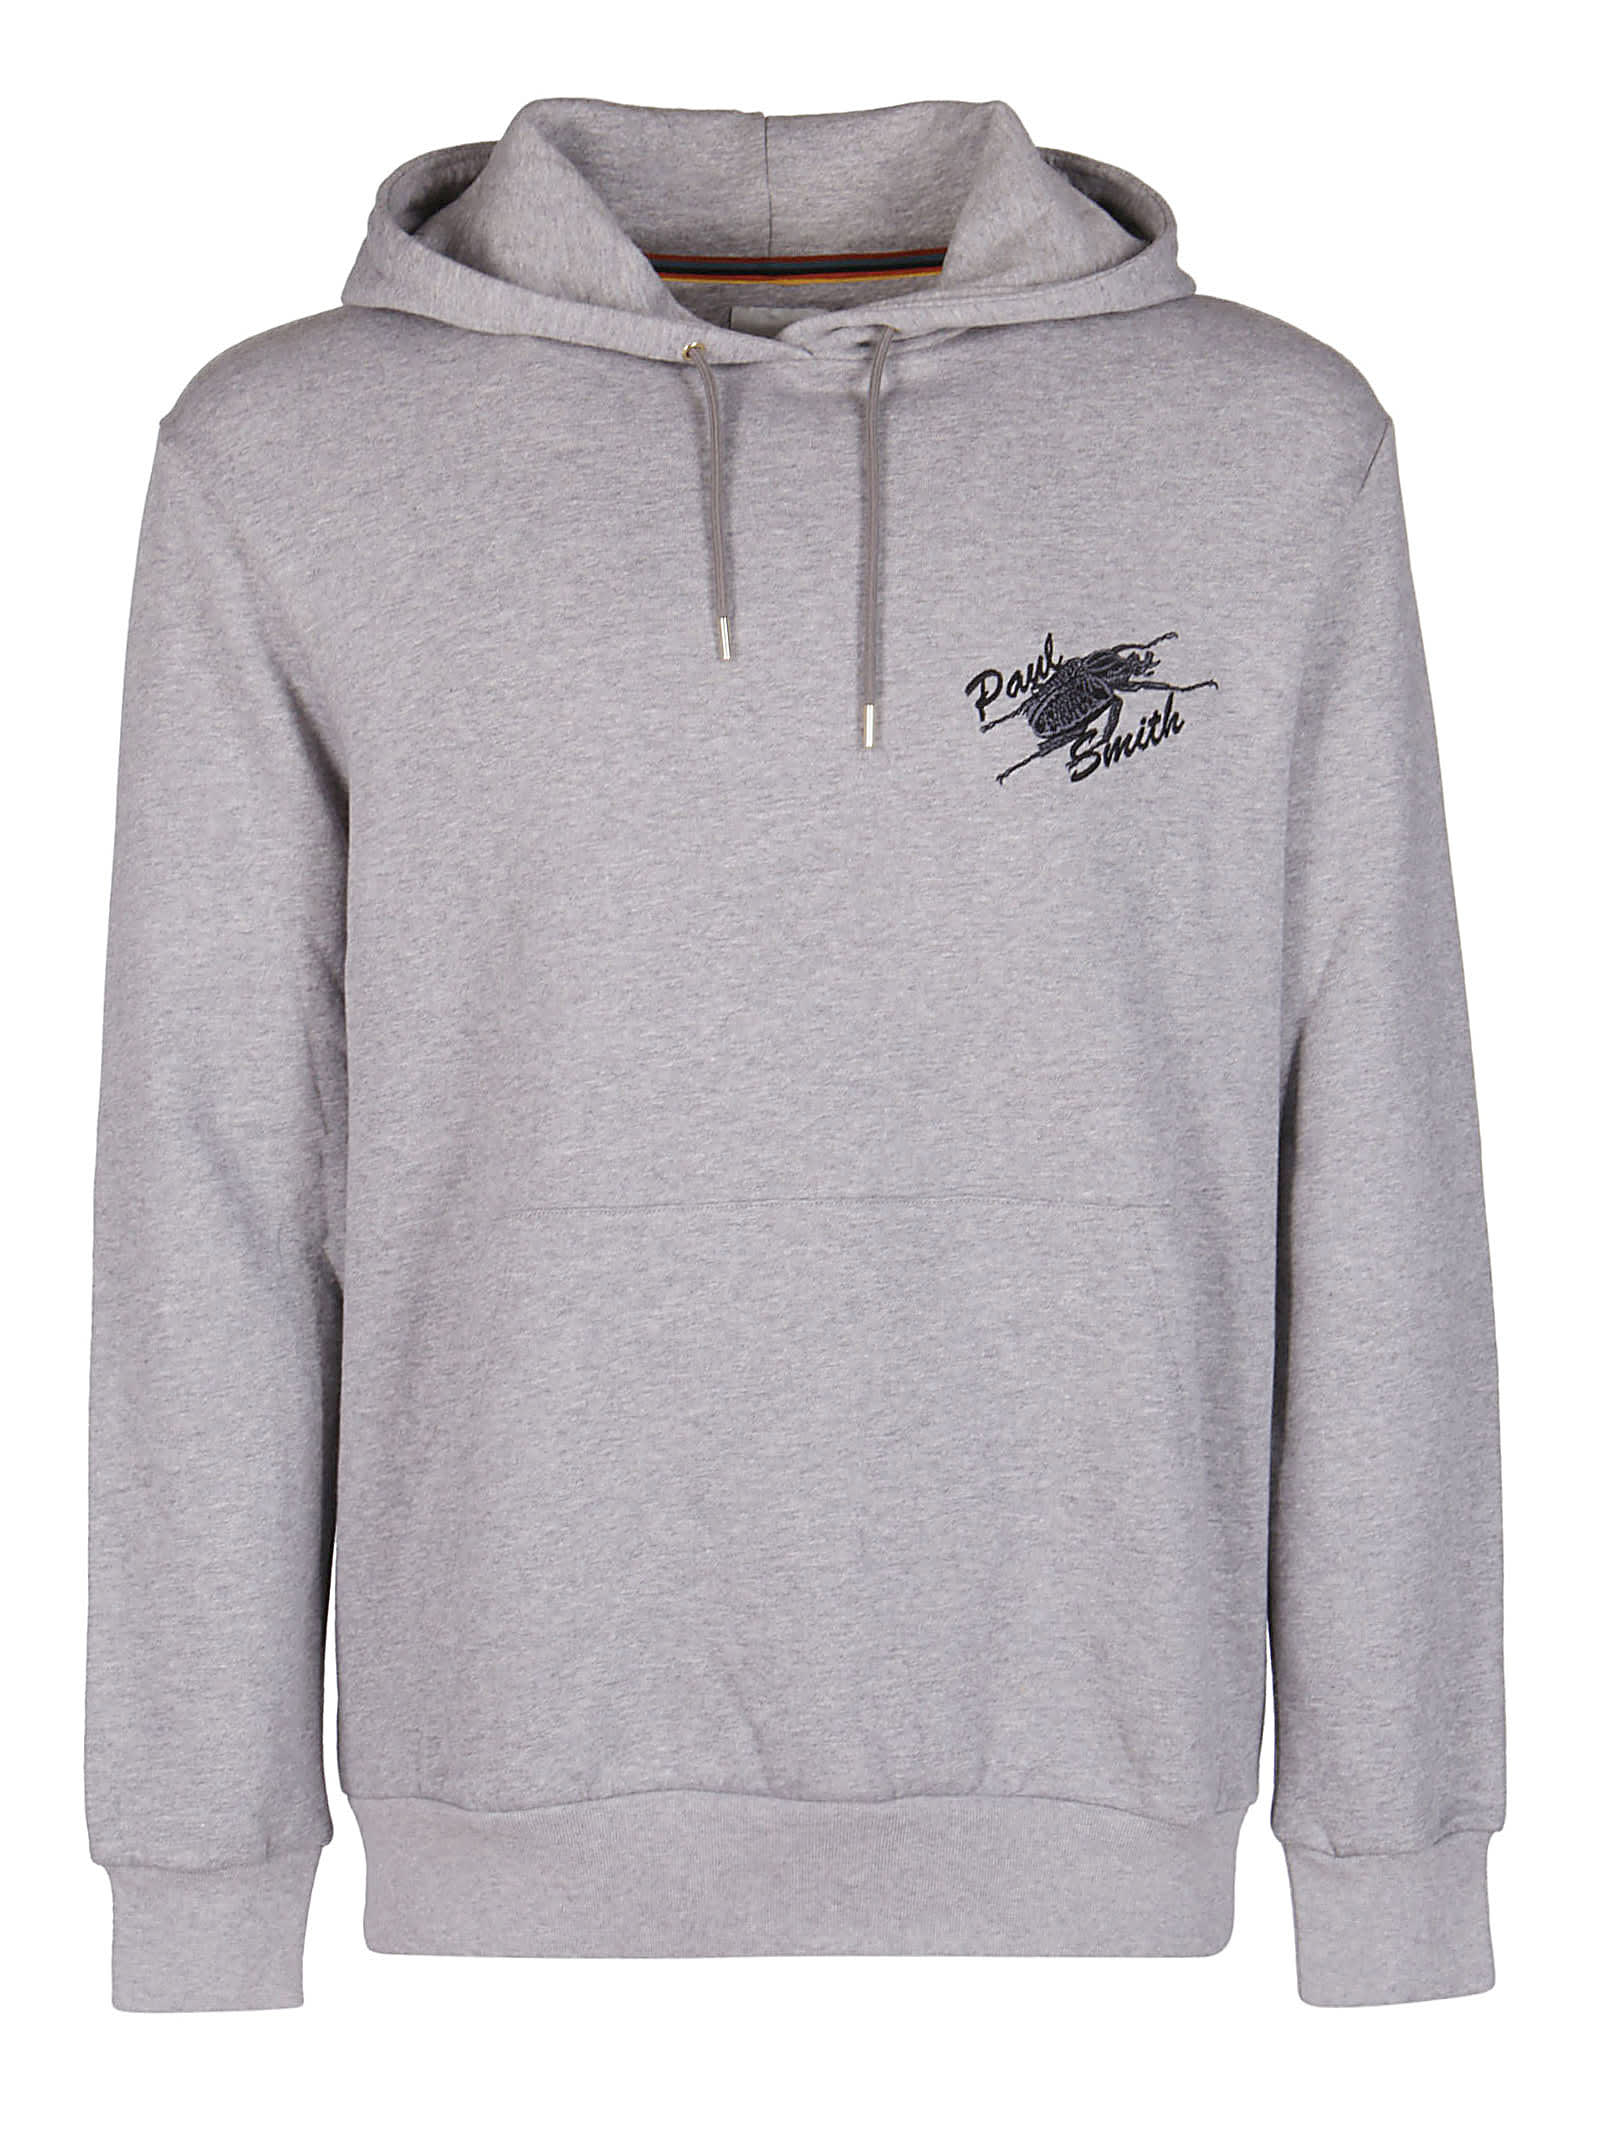 Paul Smith Grey Cotton Hoodie